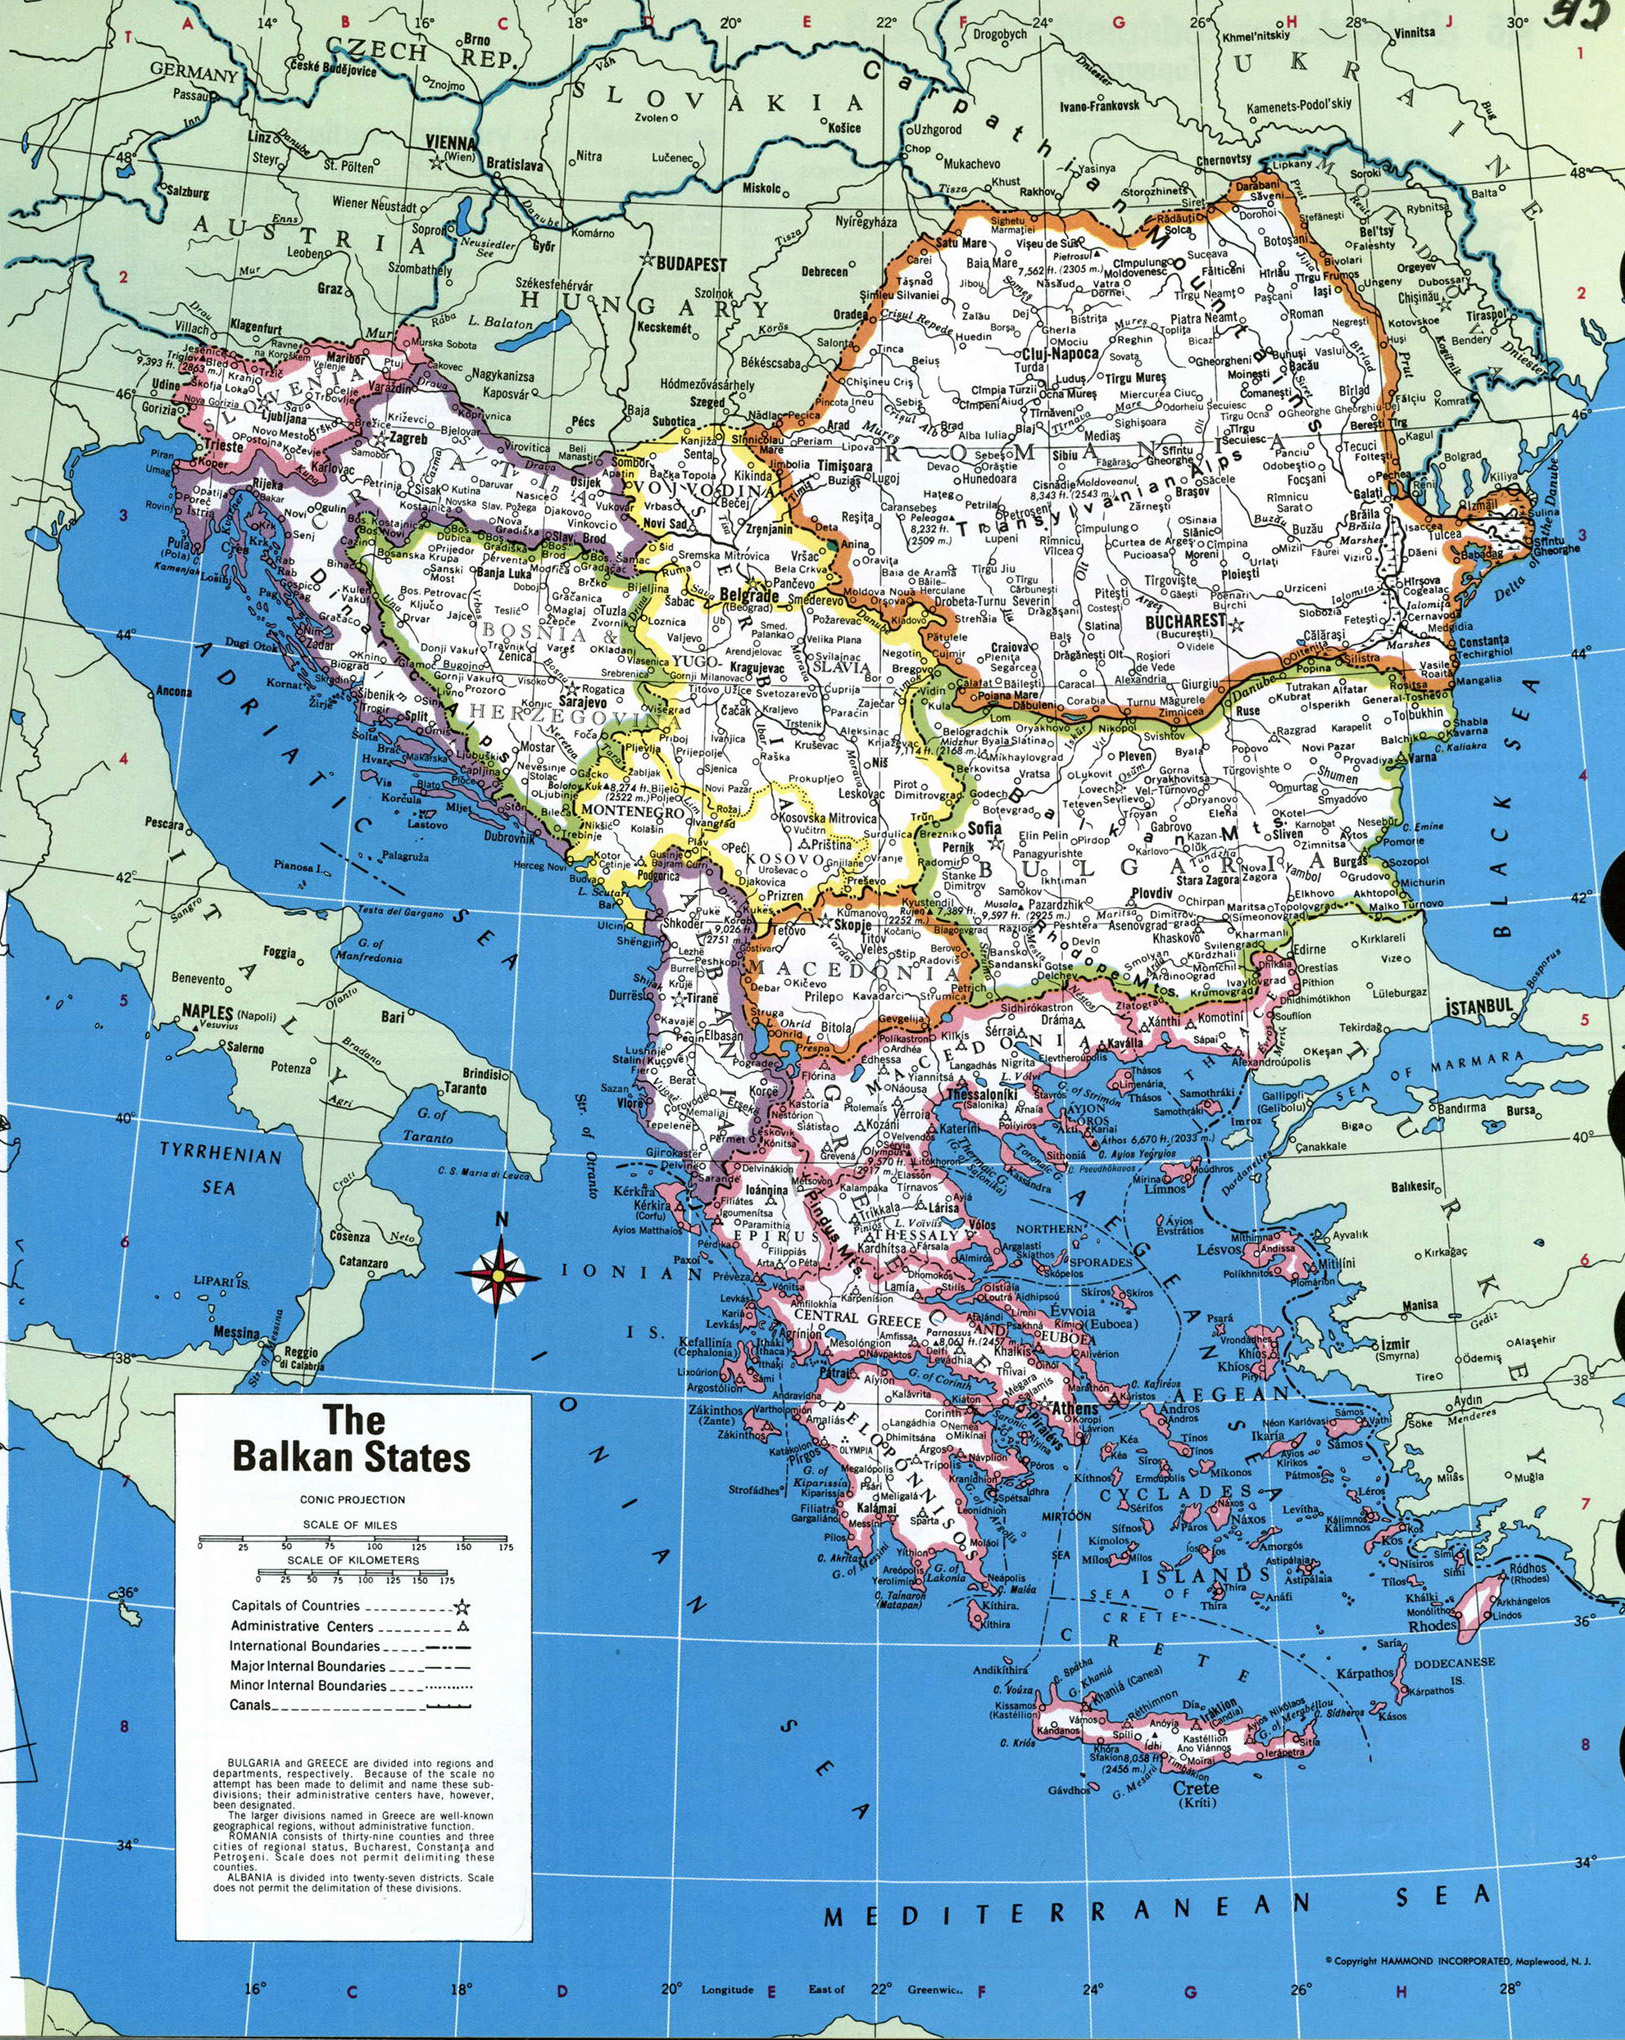 Map Of Balkan States Large detailed political map of the Balkan States | Balkans